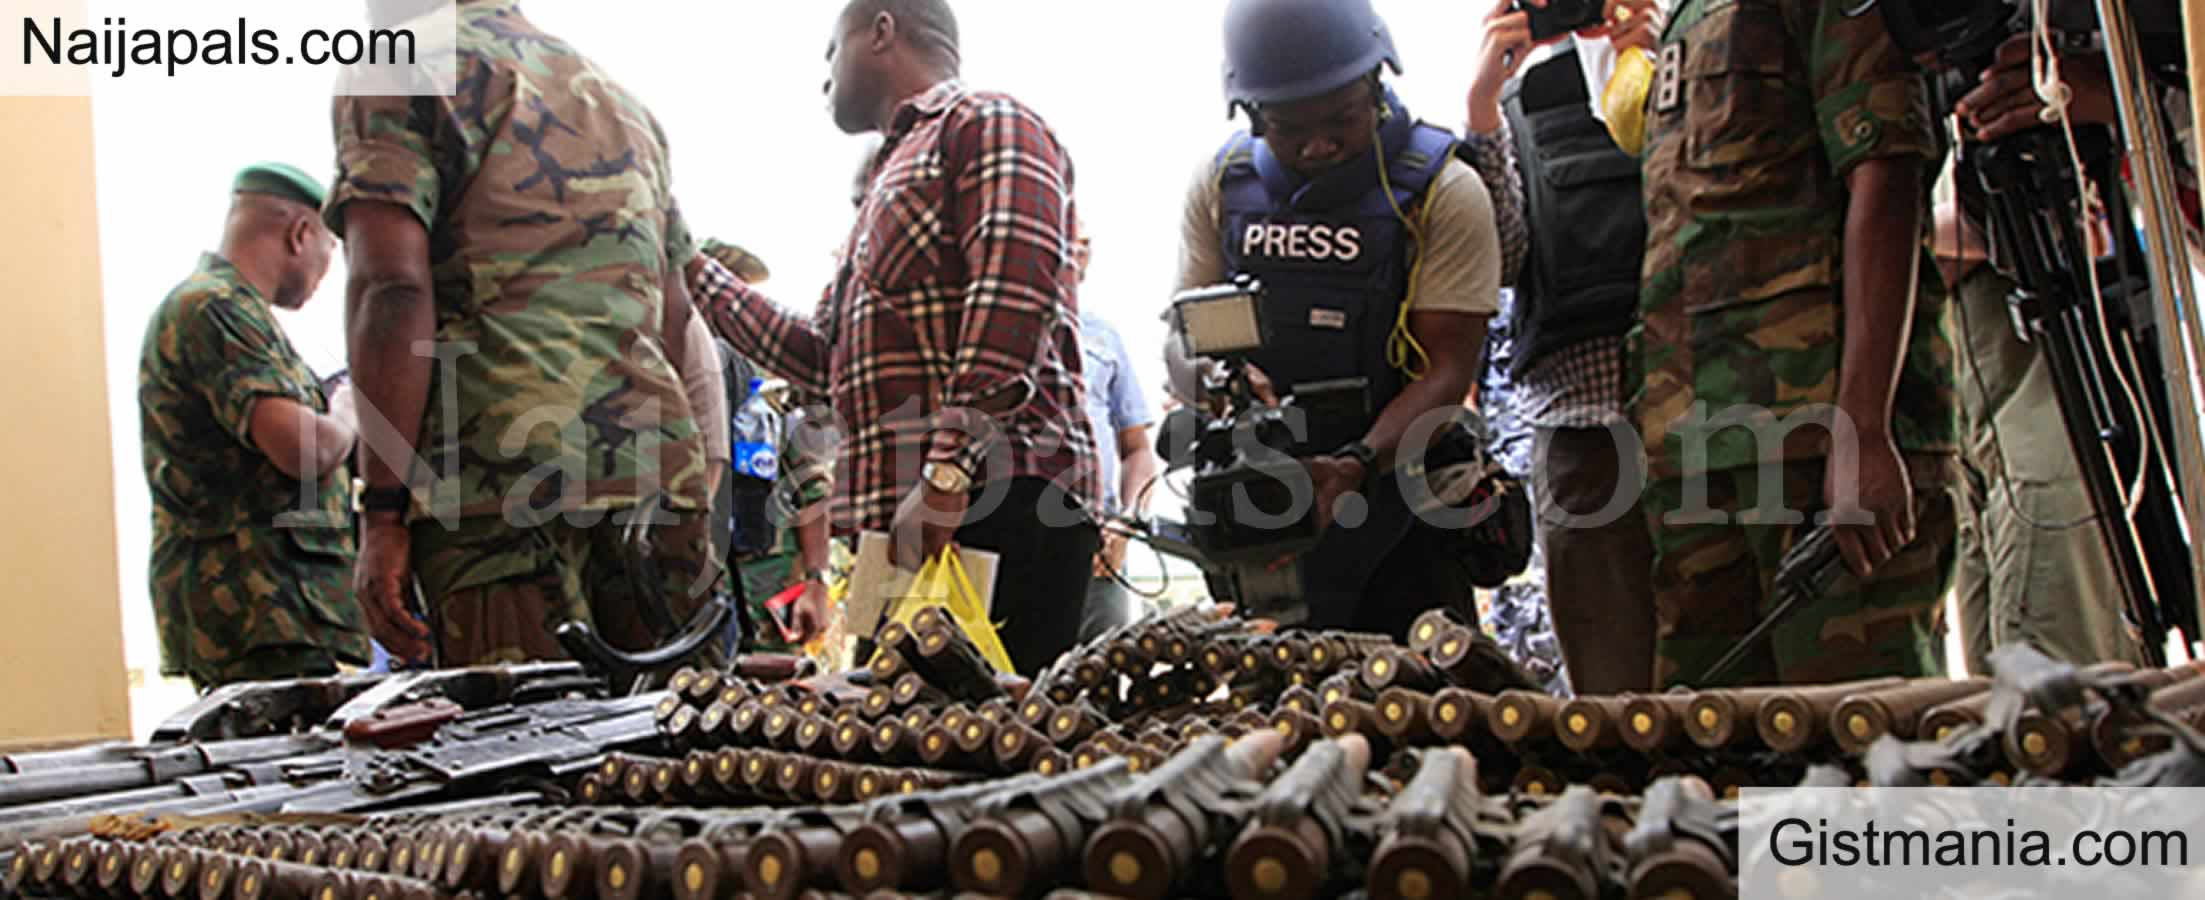 <img alt='.' class='lazyload' data-src='https://img.gistmania.com/emot/news.gif' /> <b>Nigerian Navy Laments Arms Proliferation Says Other Neighboring Countries Sell Arms When Broke</b>